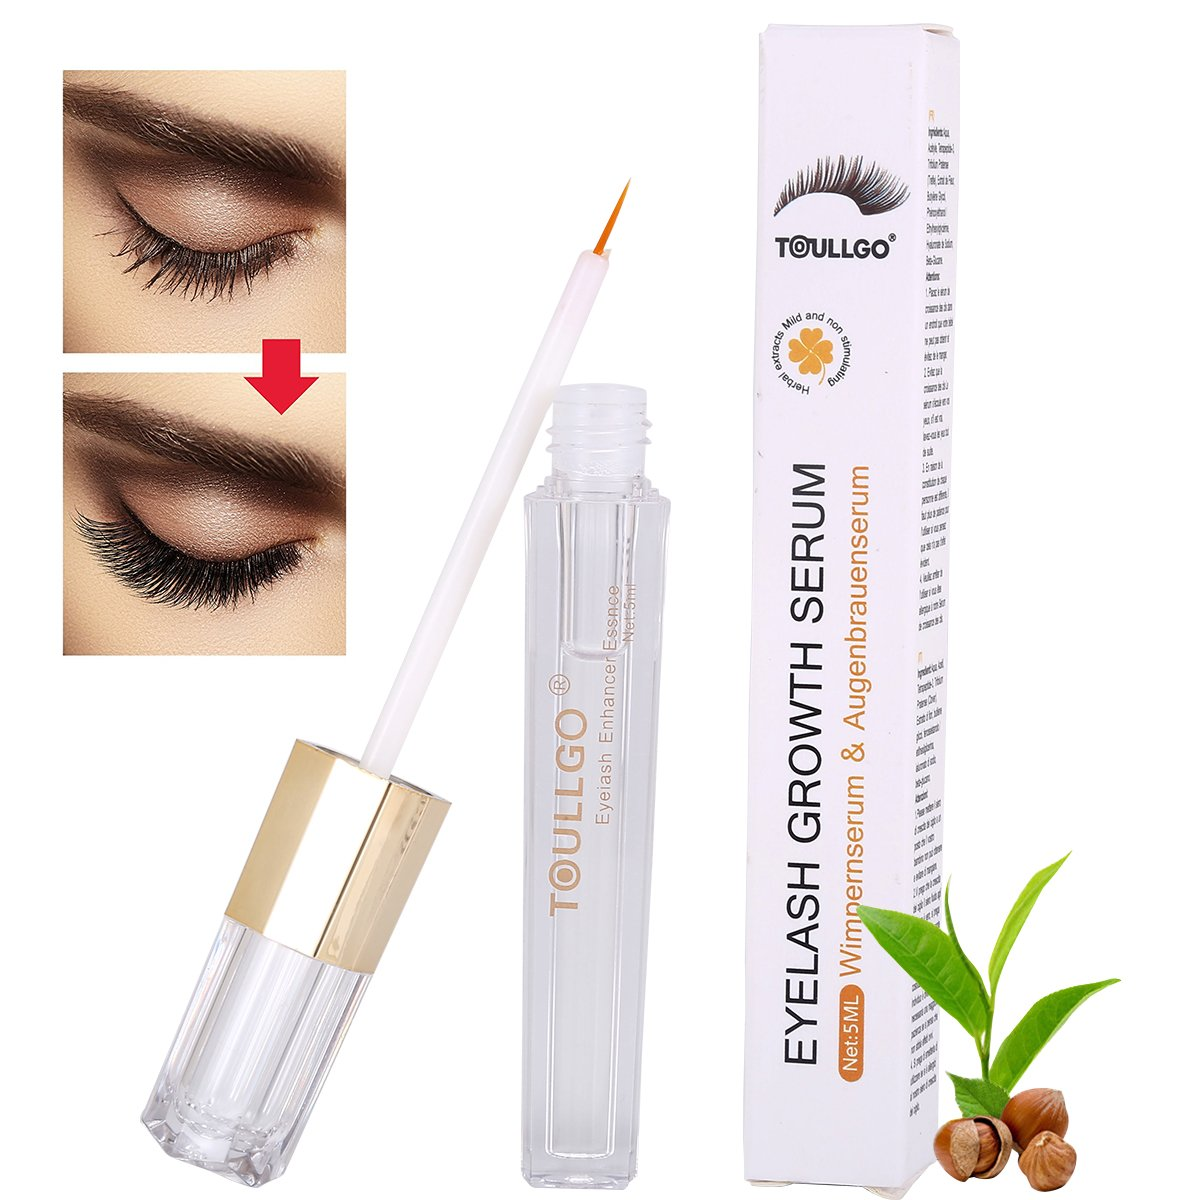 Eyelash Enhancer, eyelash growth serum, Lash & Brow Booster Serum, Eyelash Growth Enhancer & Brow Serum for Long, Luscious Lashes and Eyebrows Natural Lush Eyelash Growth & Regrowth